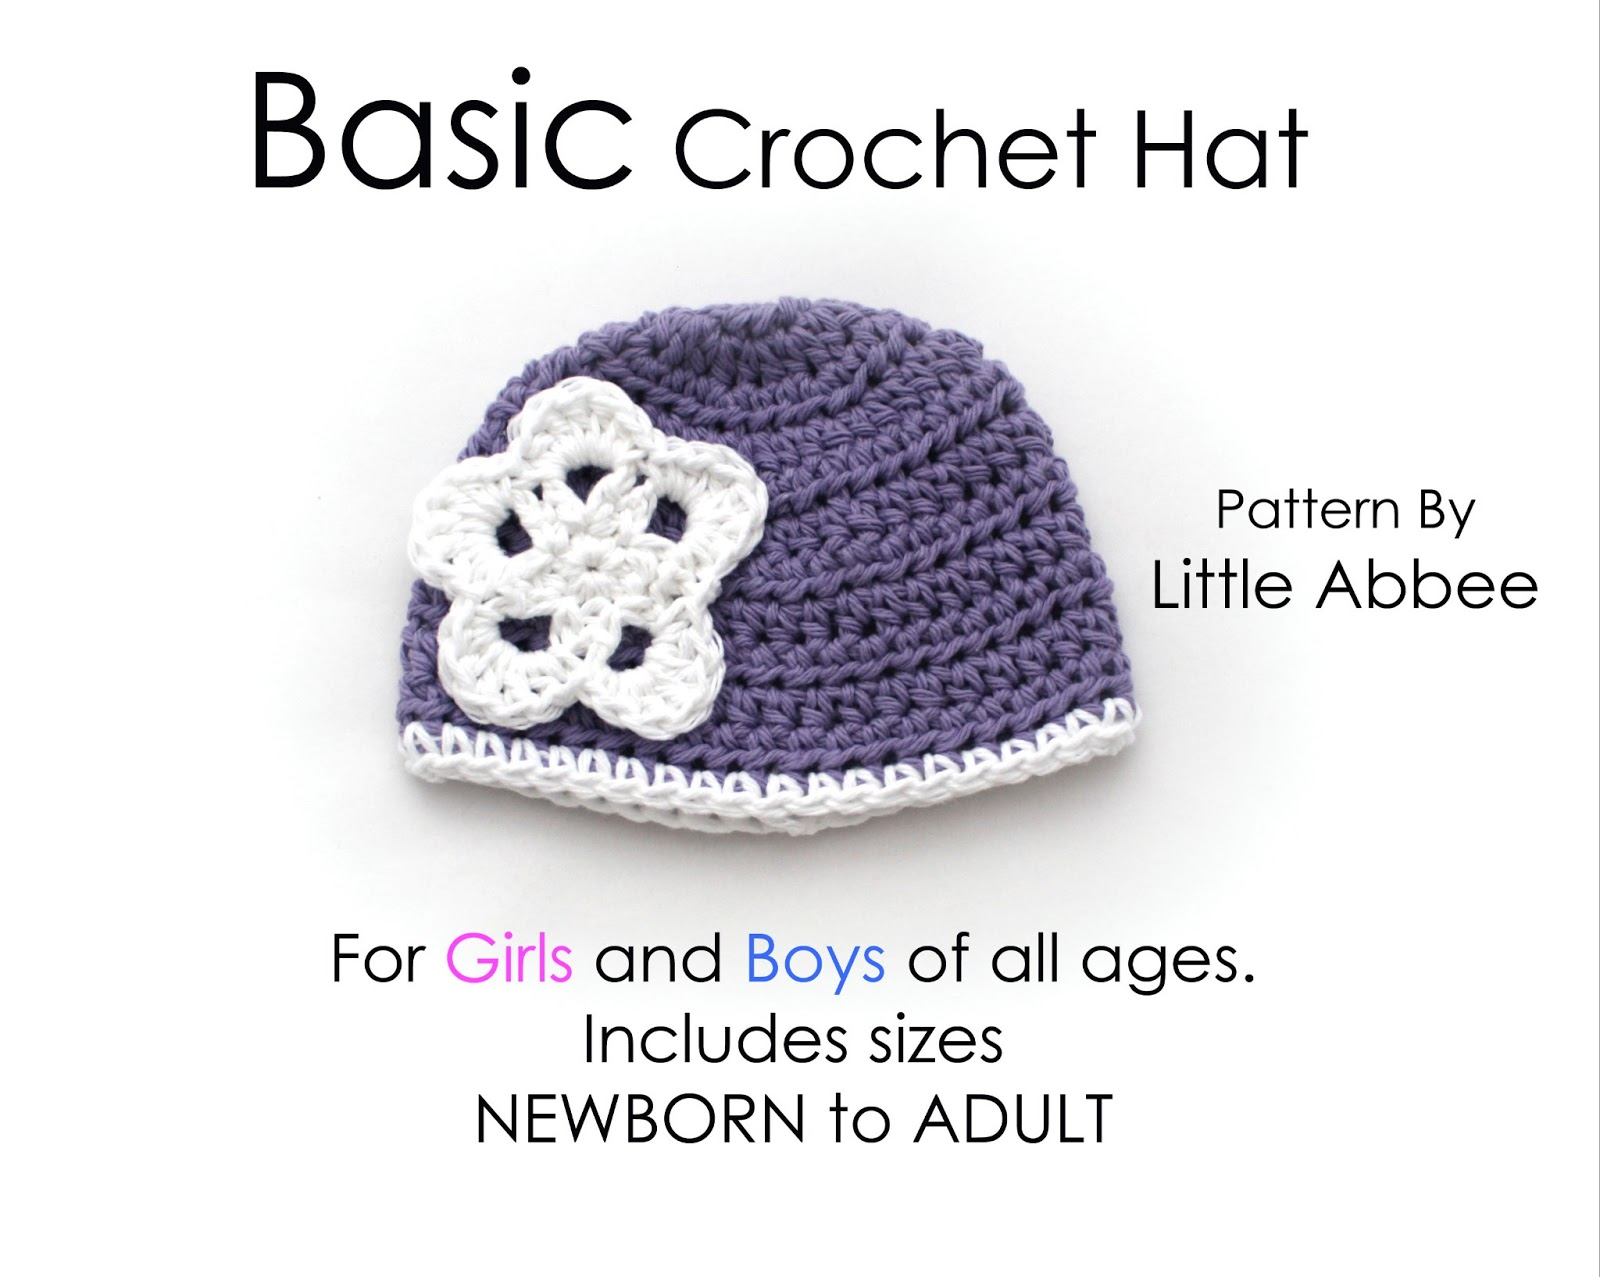 Little Abbee: Tutorial: Basic Crochet Hat!